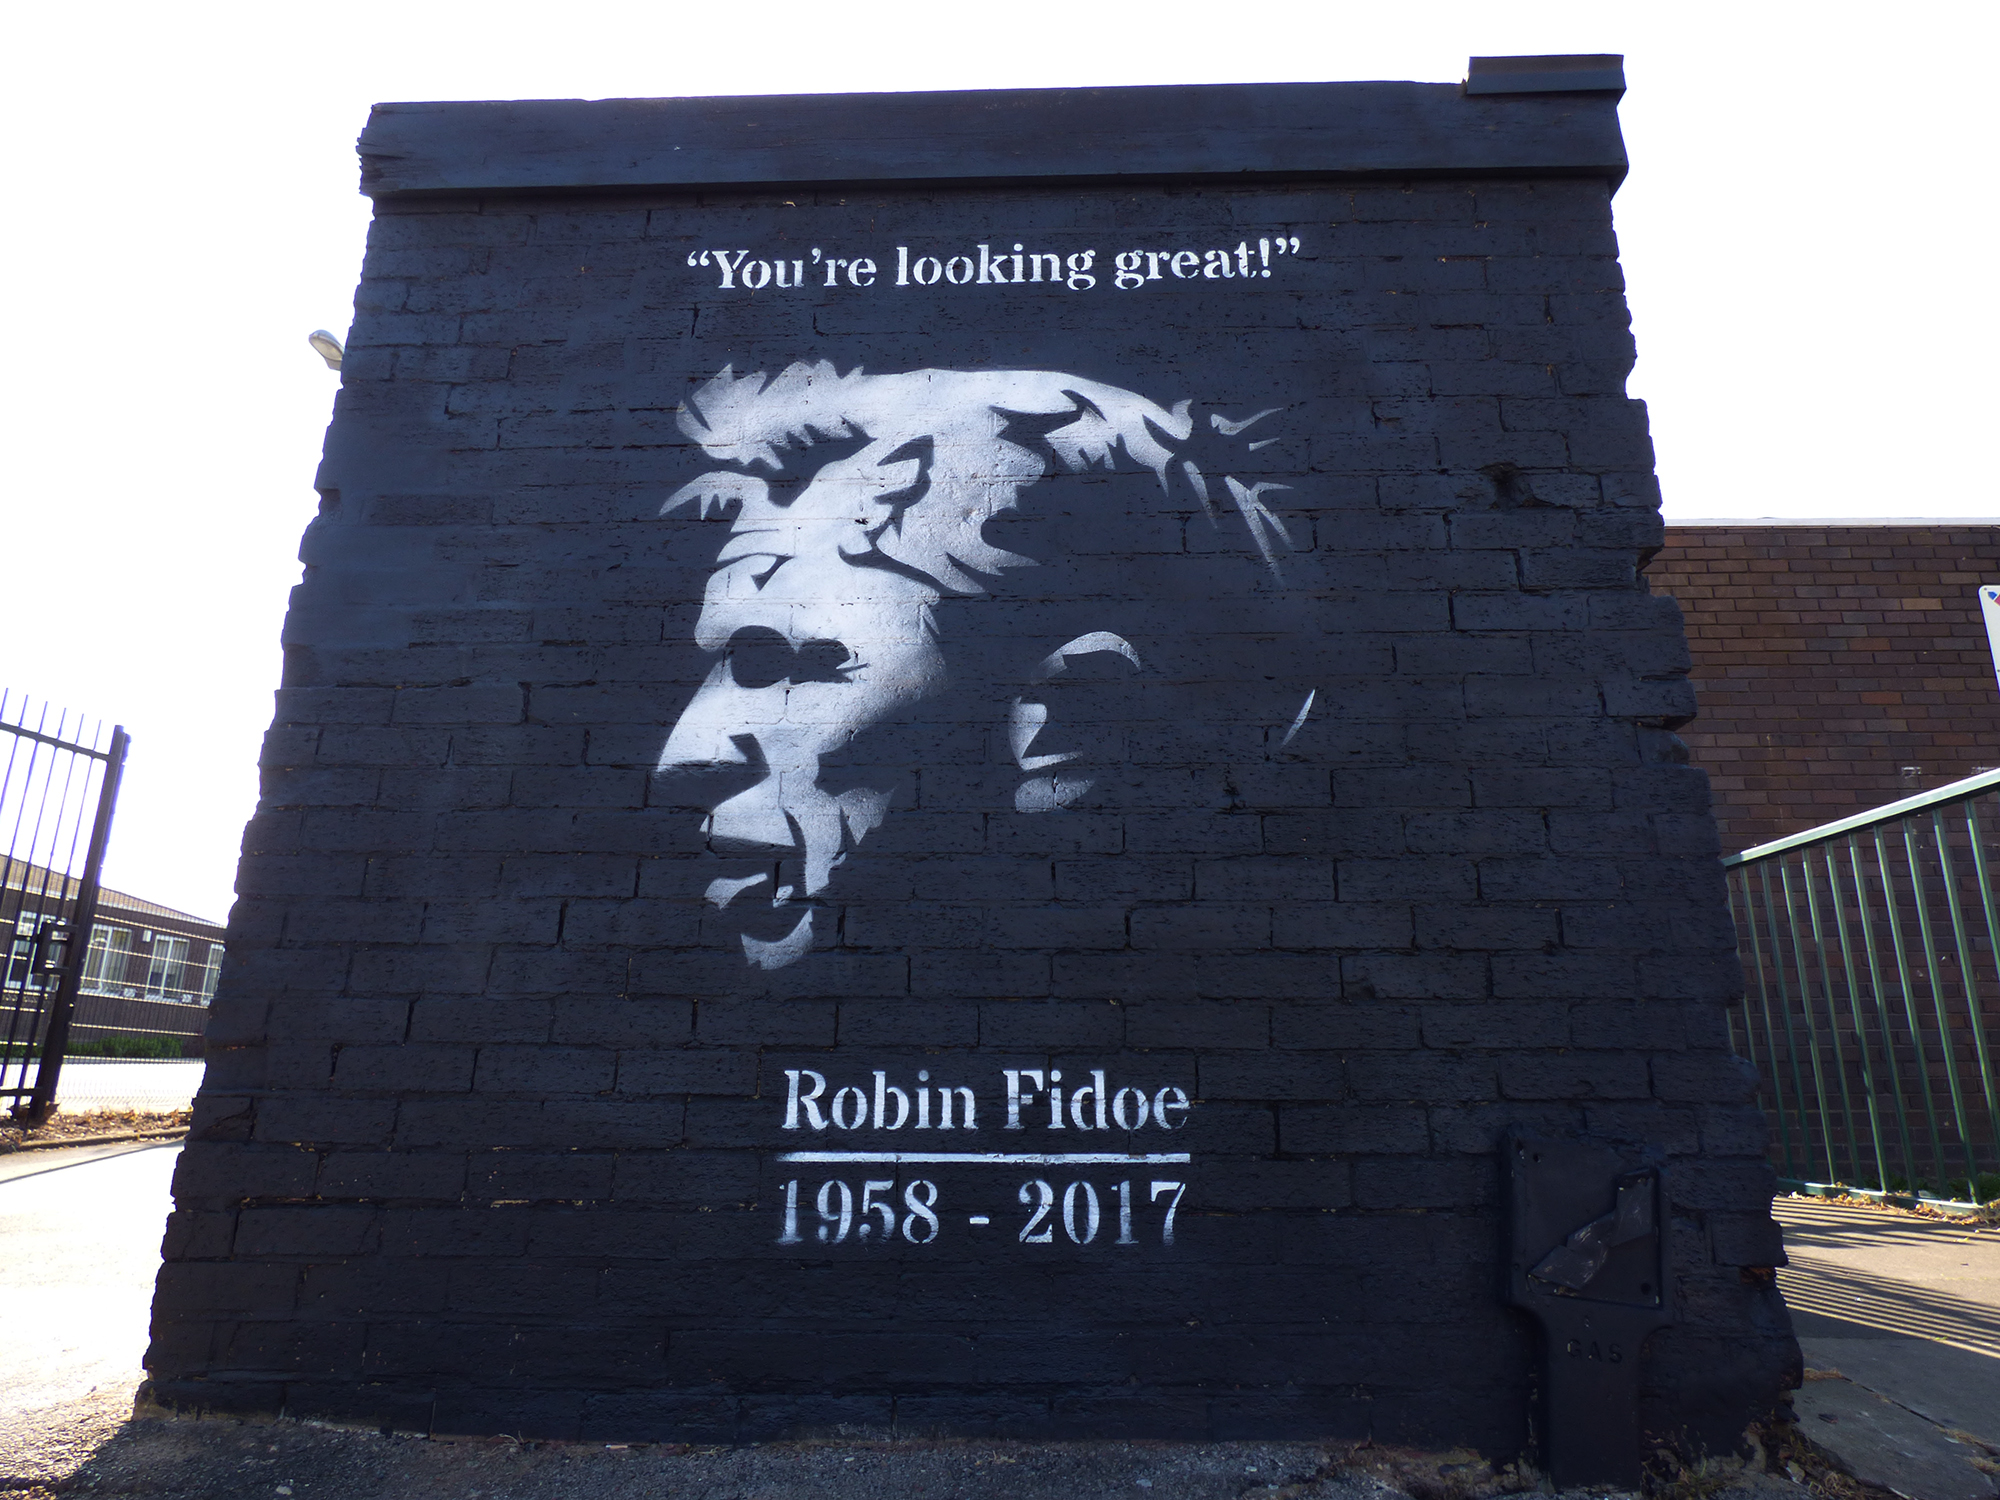 OPINION | Birmingham street art with a human message